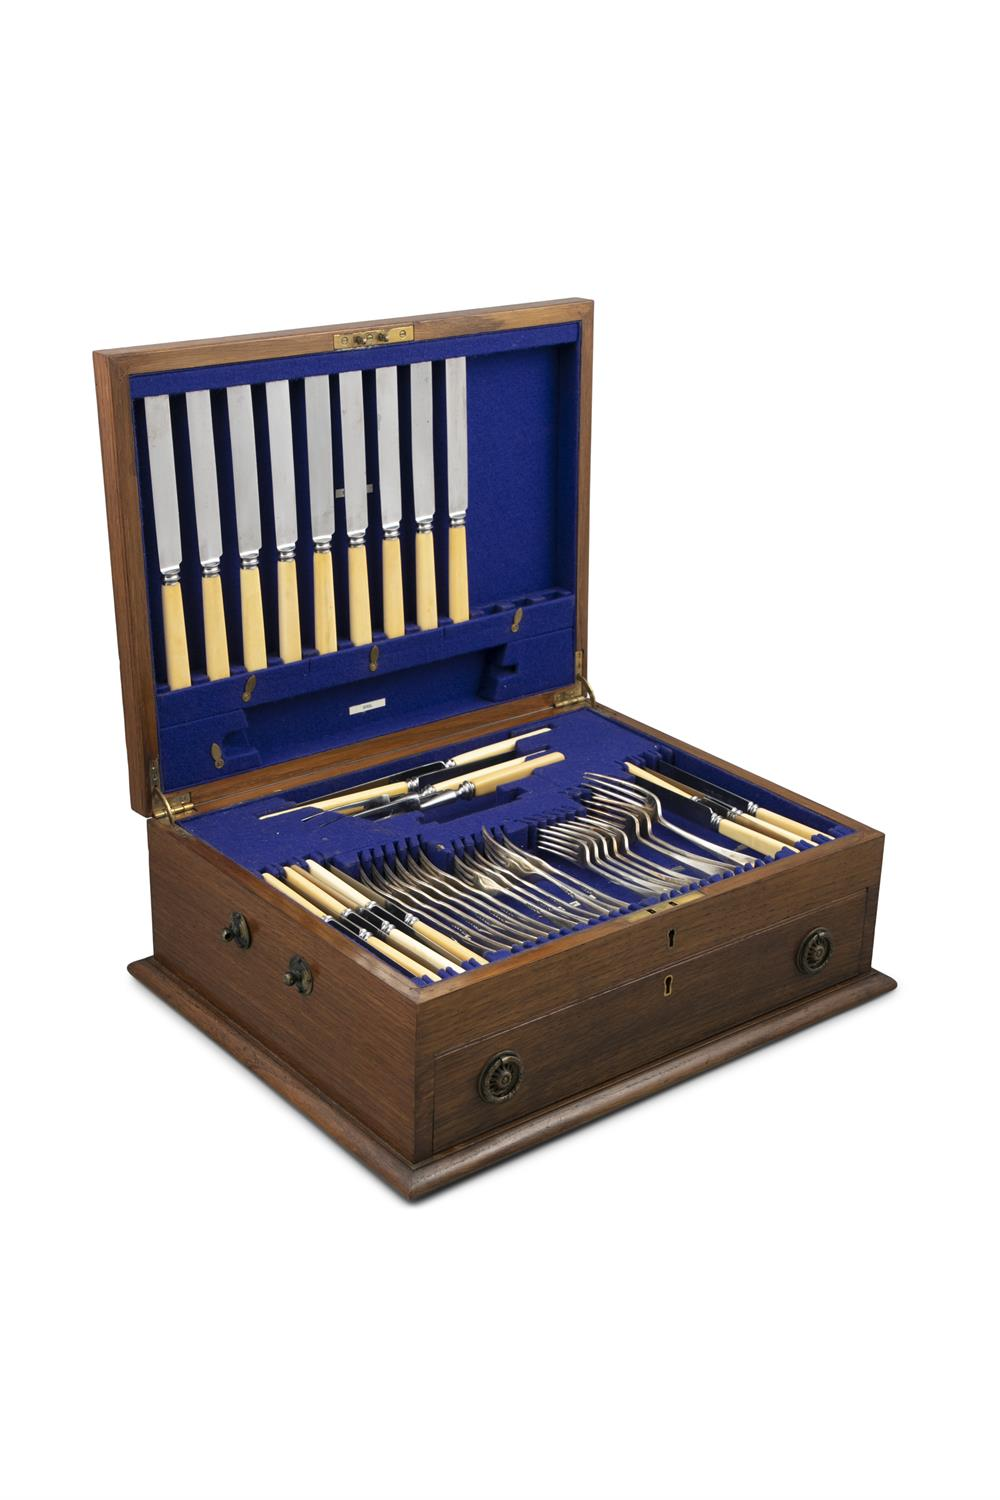 AN OAK CASED CANTEEN OF SILVER HANOVERIAN PATTERN AND BONE HANDLED CUTLERY, Sheffield c. - Image 2 of 3